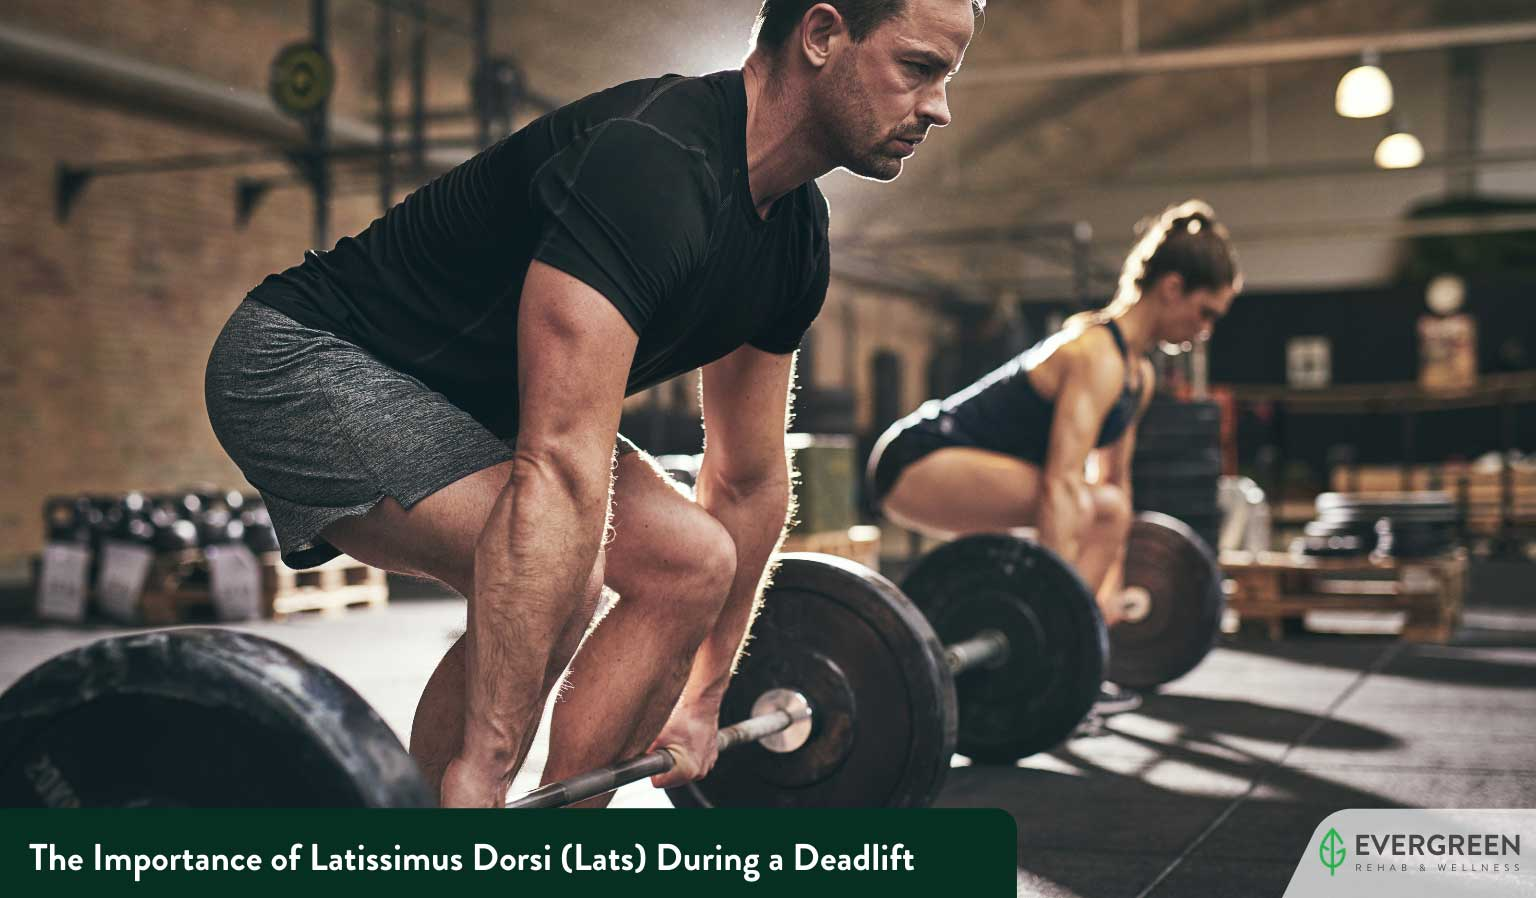 The Importance of Latissimus Dorsi (Lats) During a Deadlift